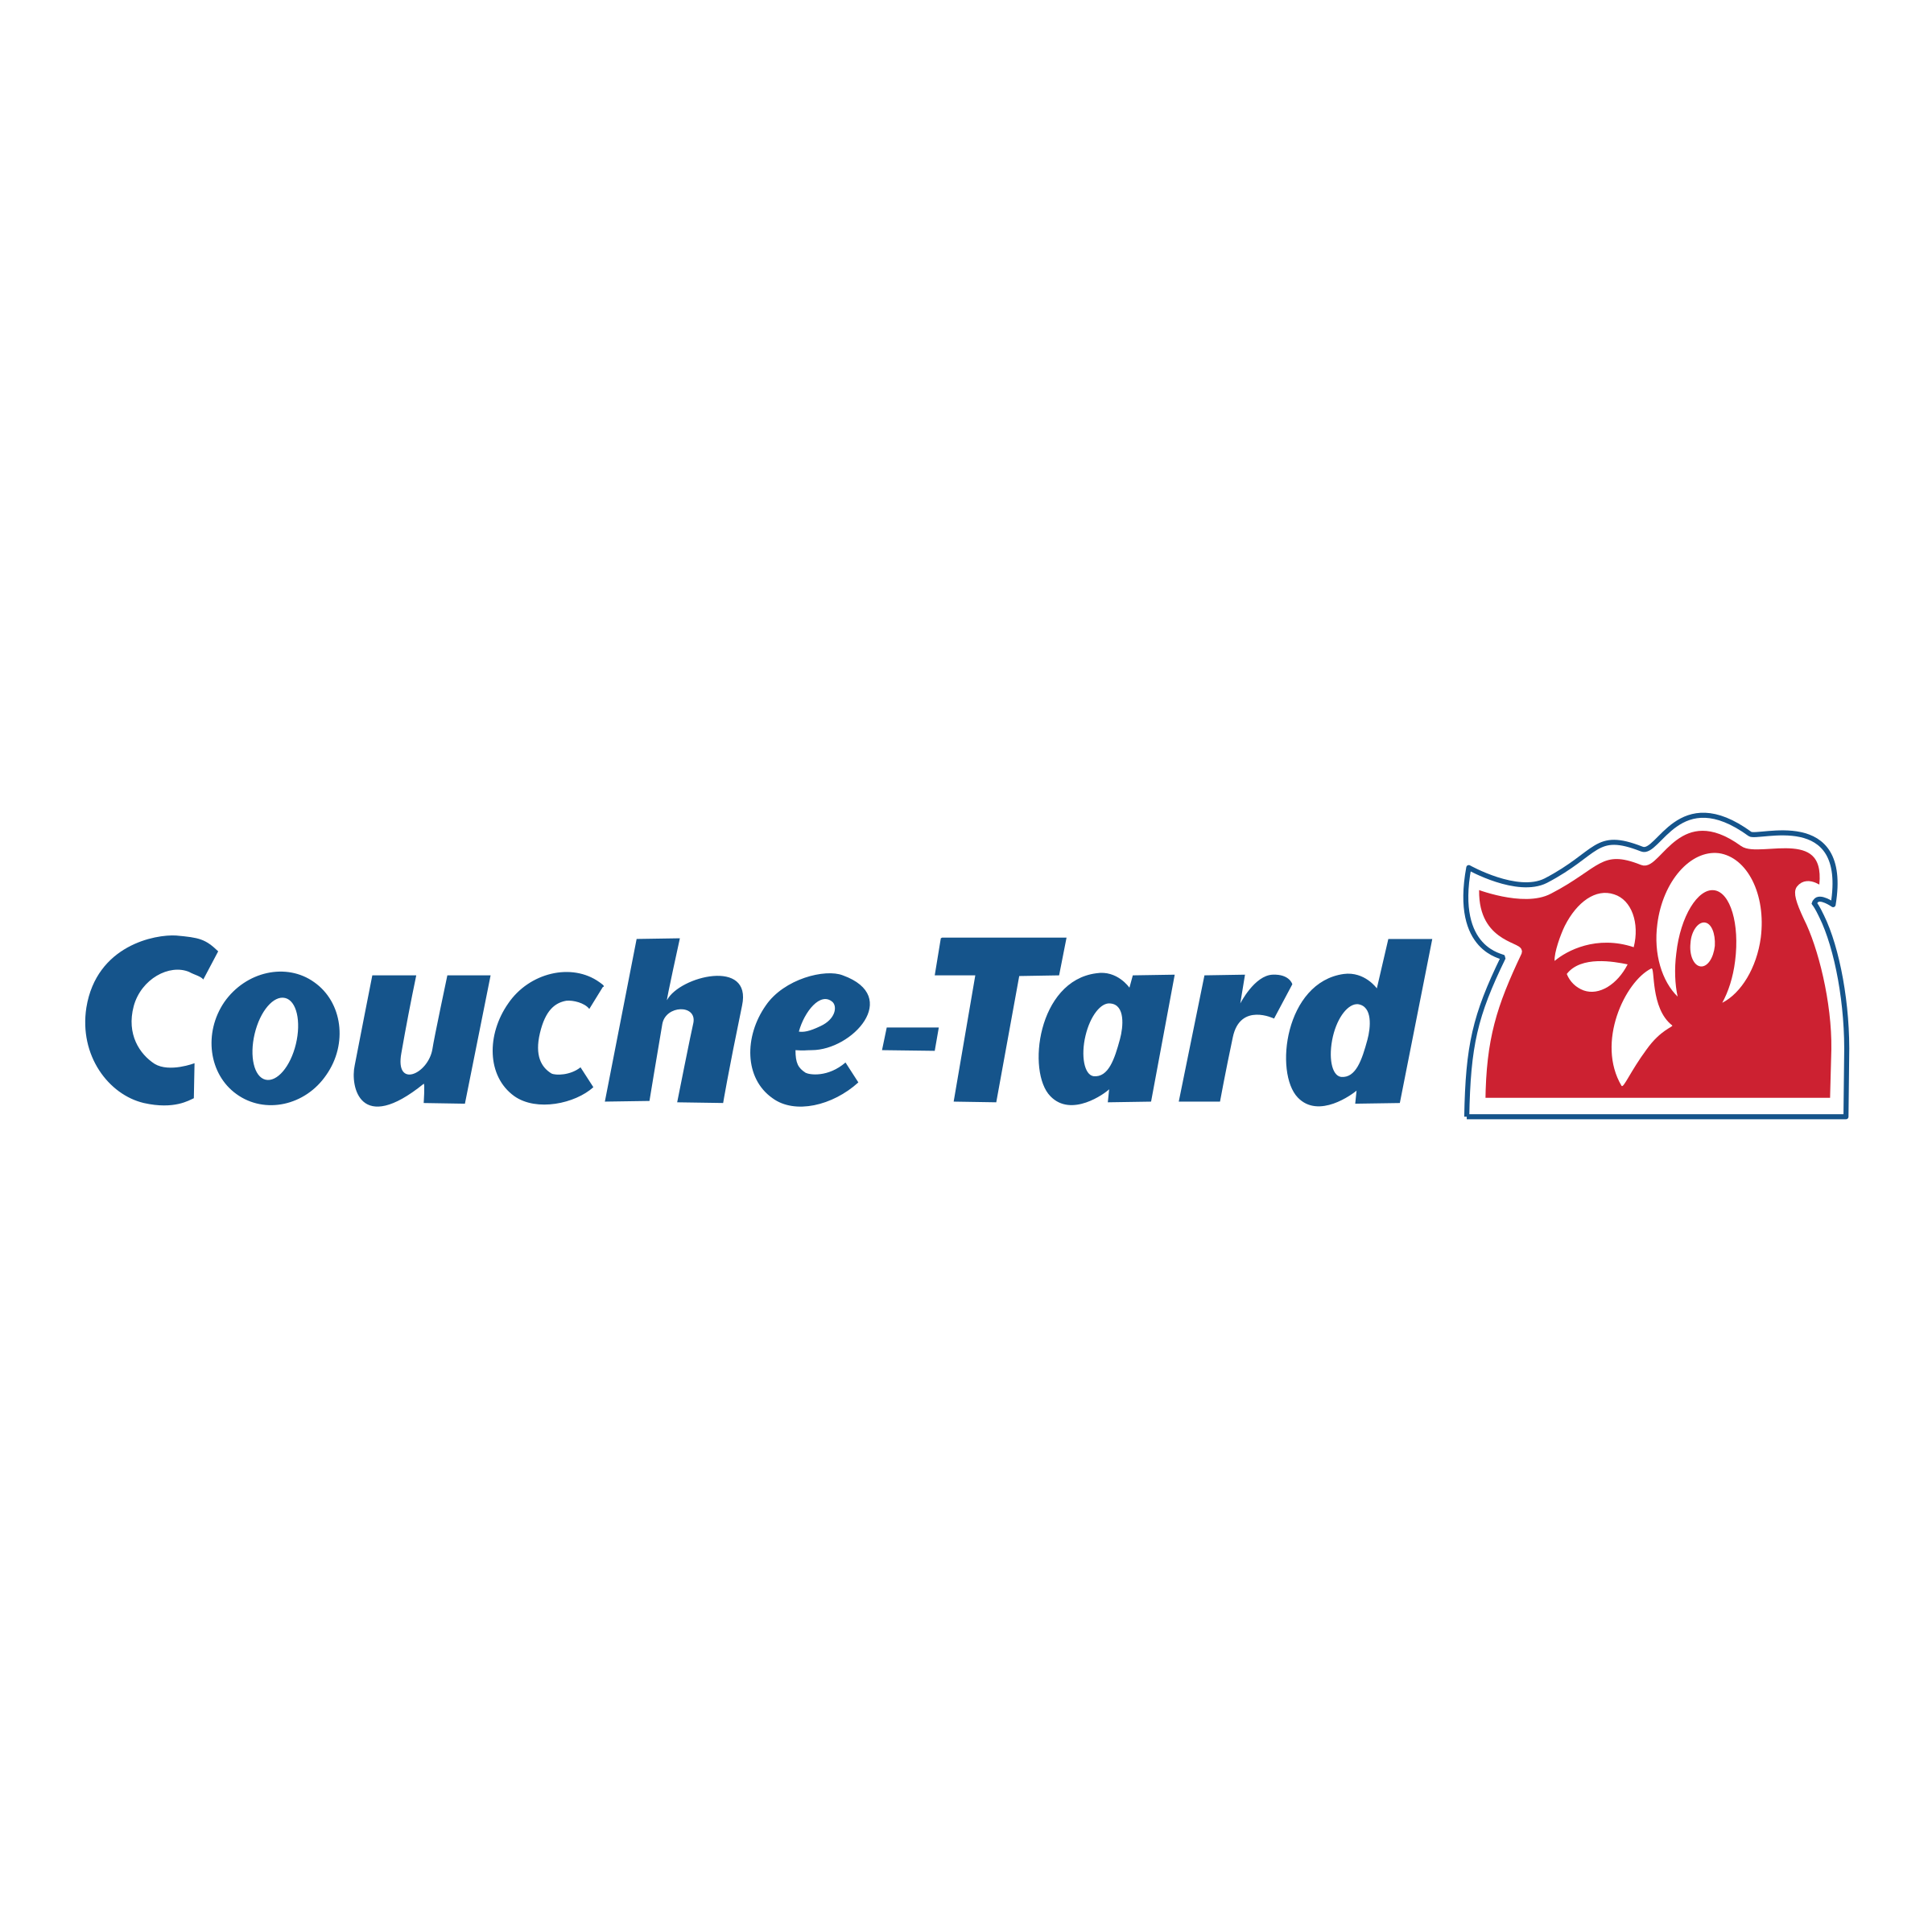 couche-tard-logo-png-transparent